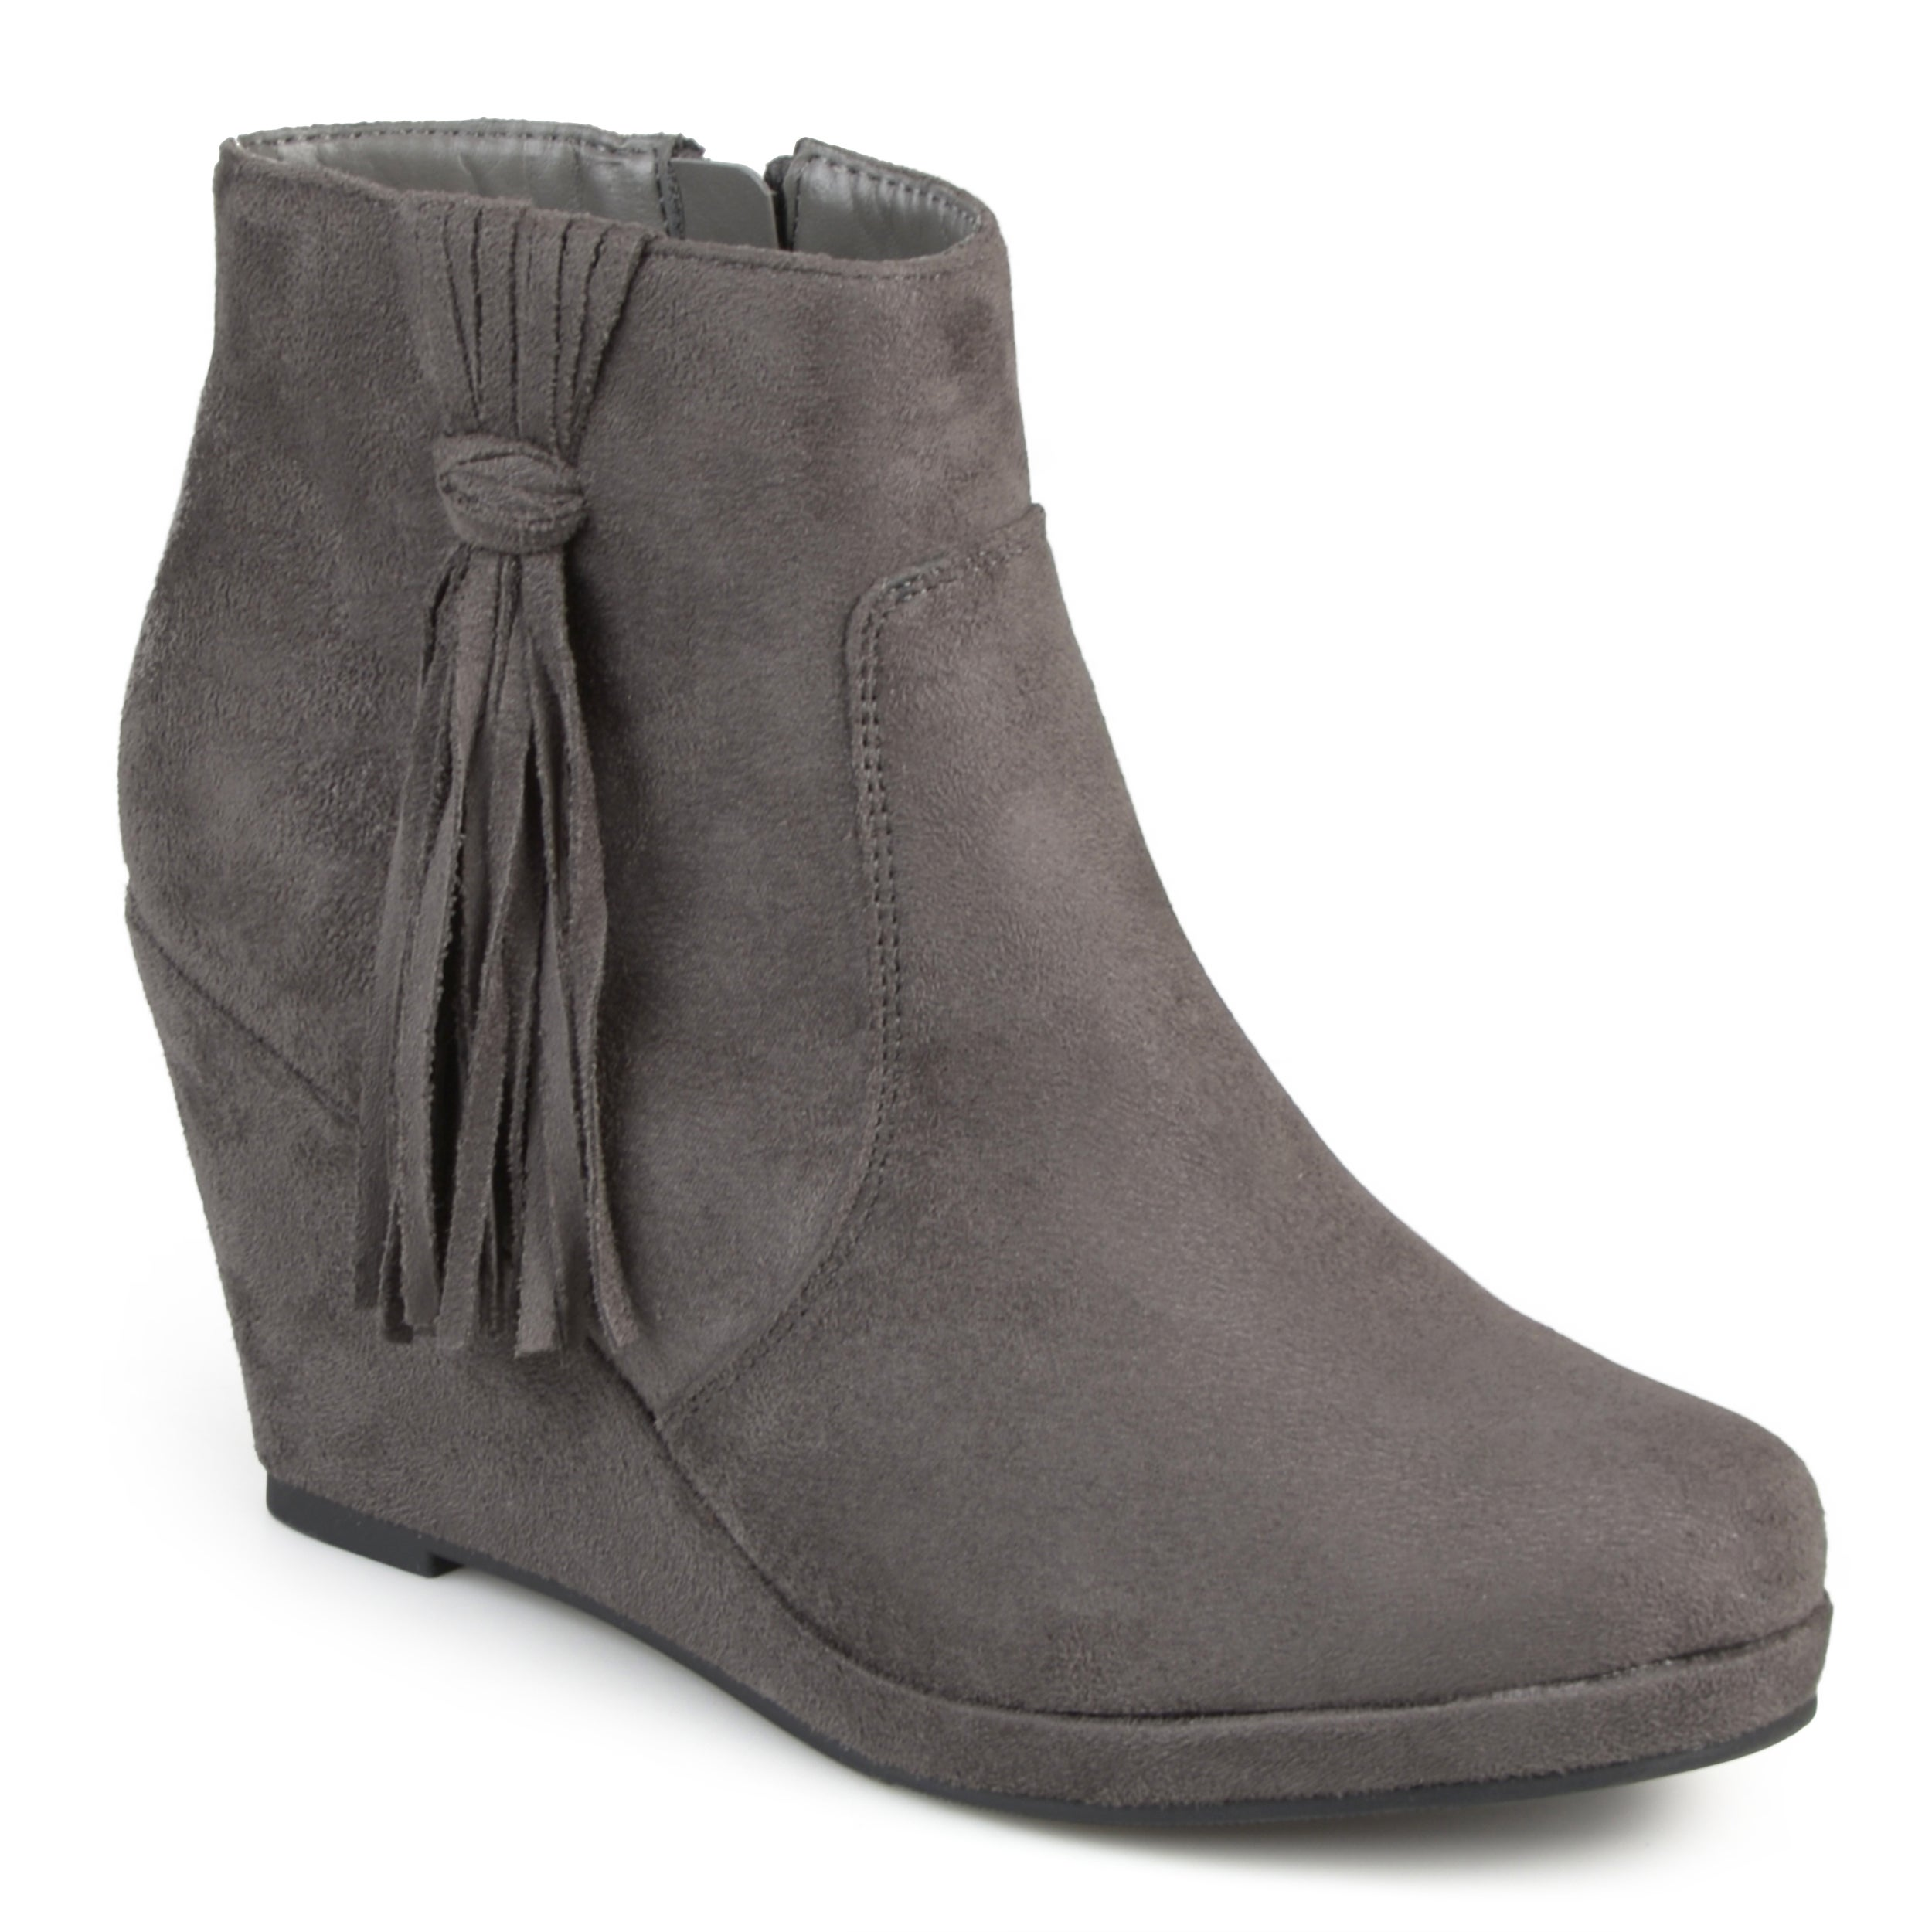 Journee Collection Ela Women's ... Wedge Ankle Boots 70ld8zuePn